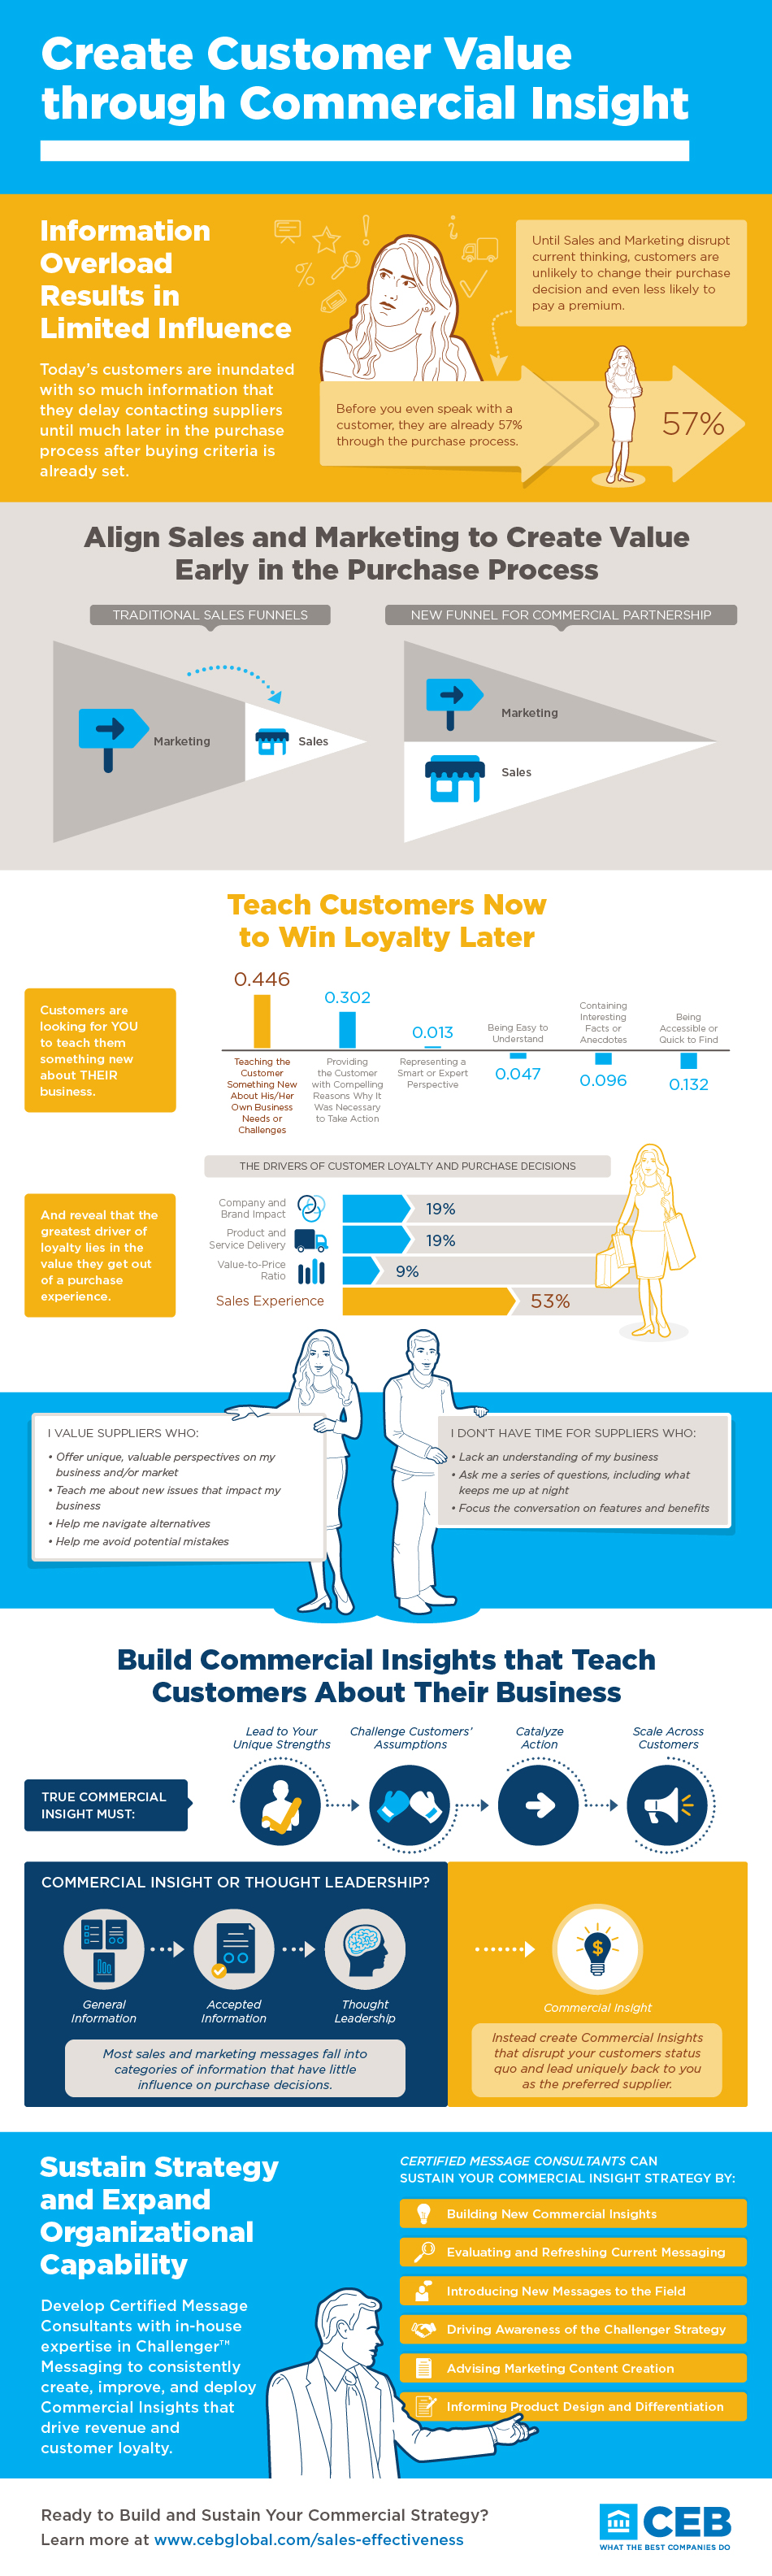 CEB_Commercial_Insight